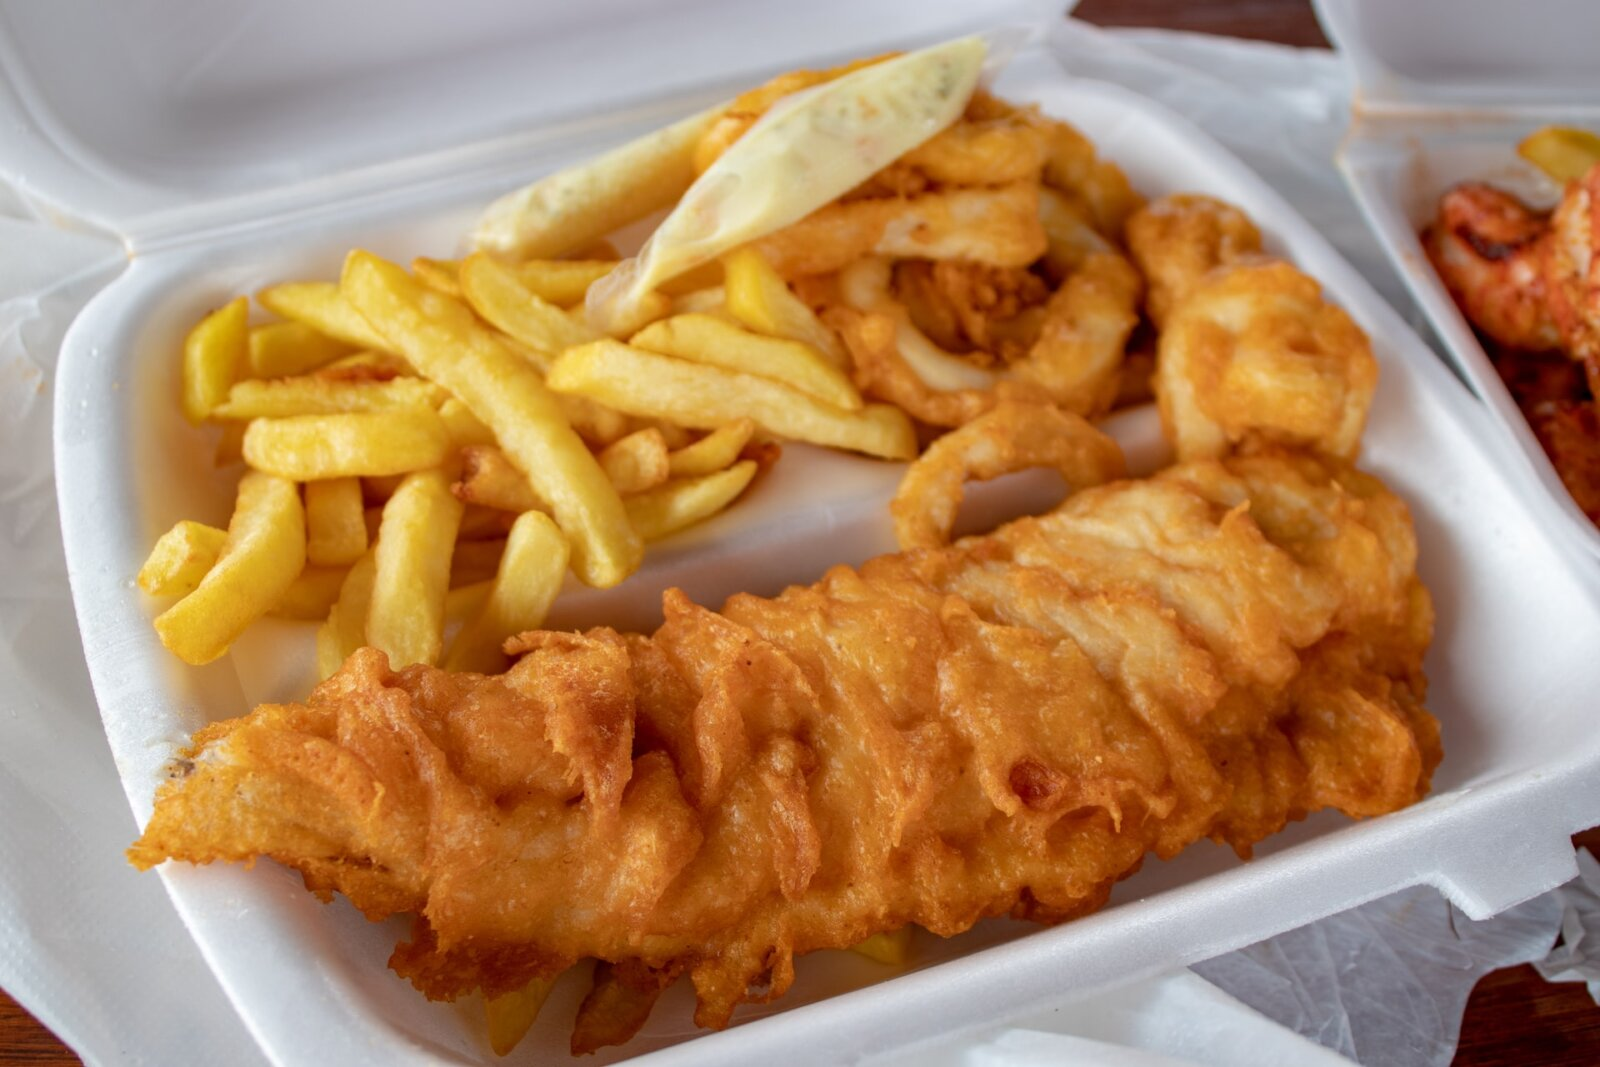 The UK's best chippies have been revealed by a top chef, The Manc